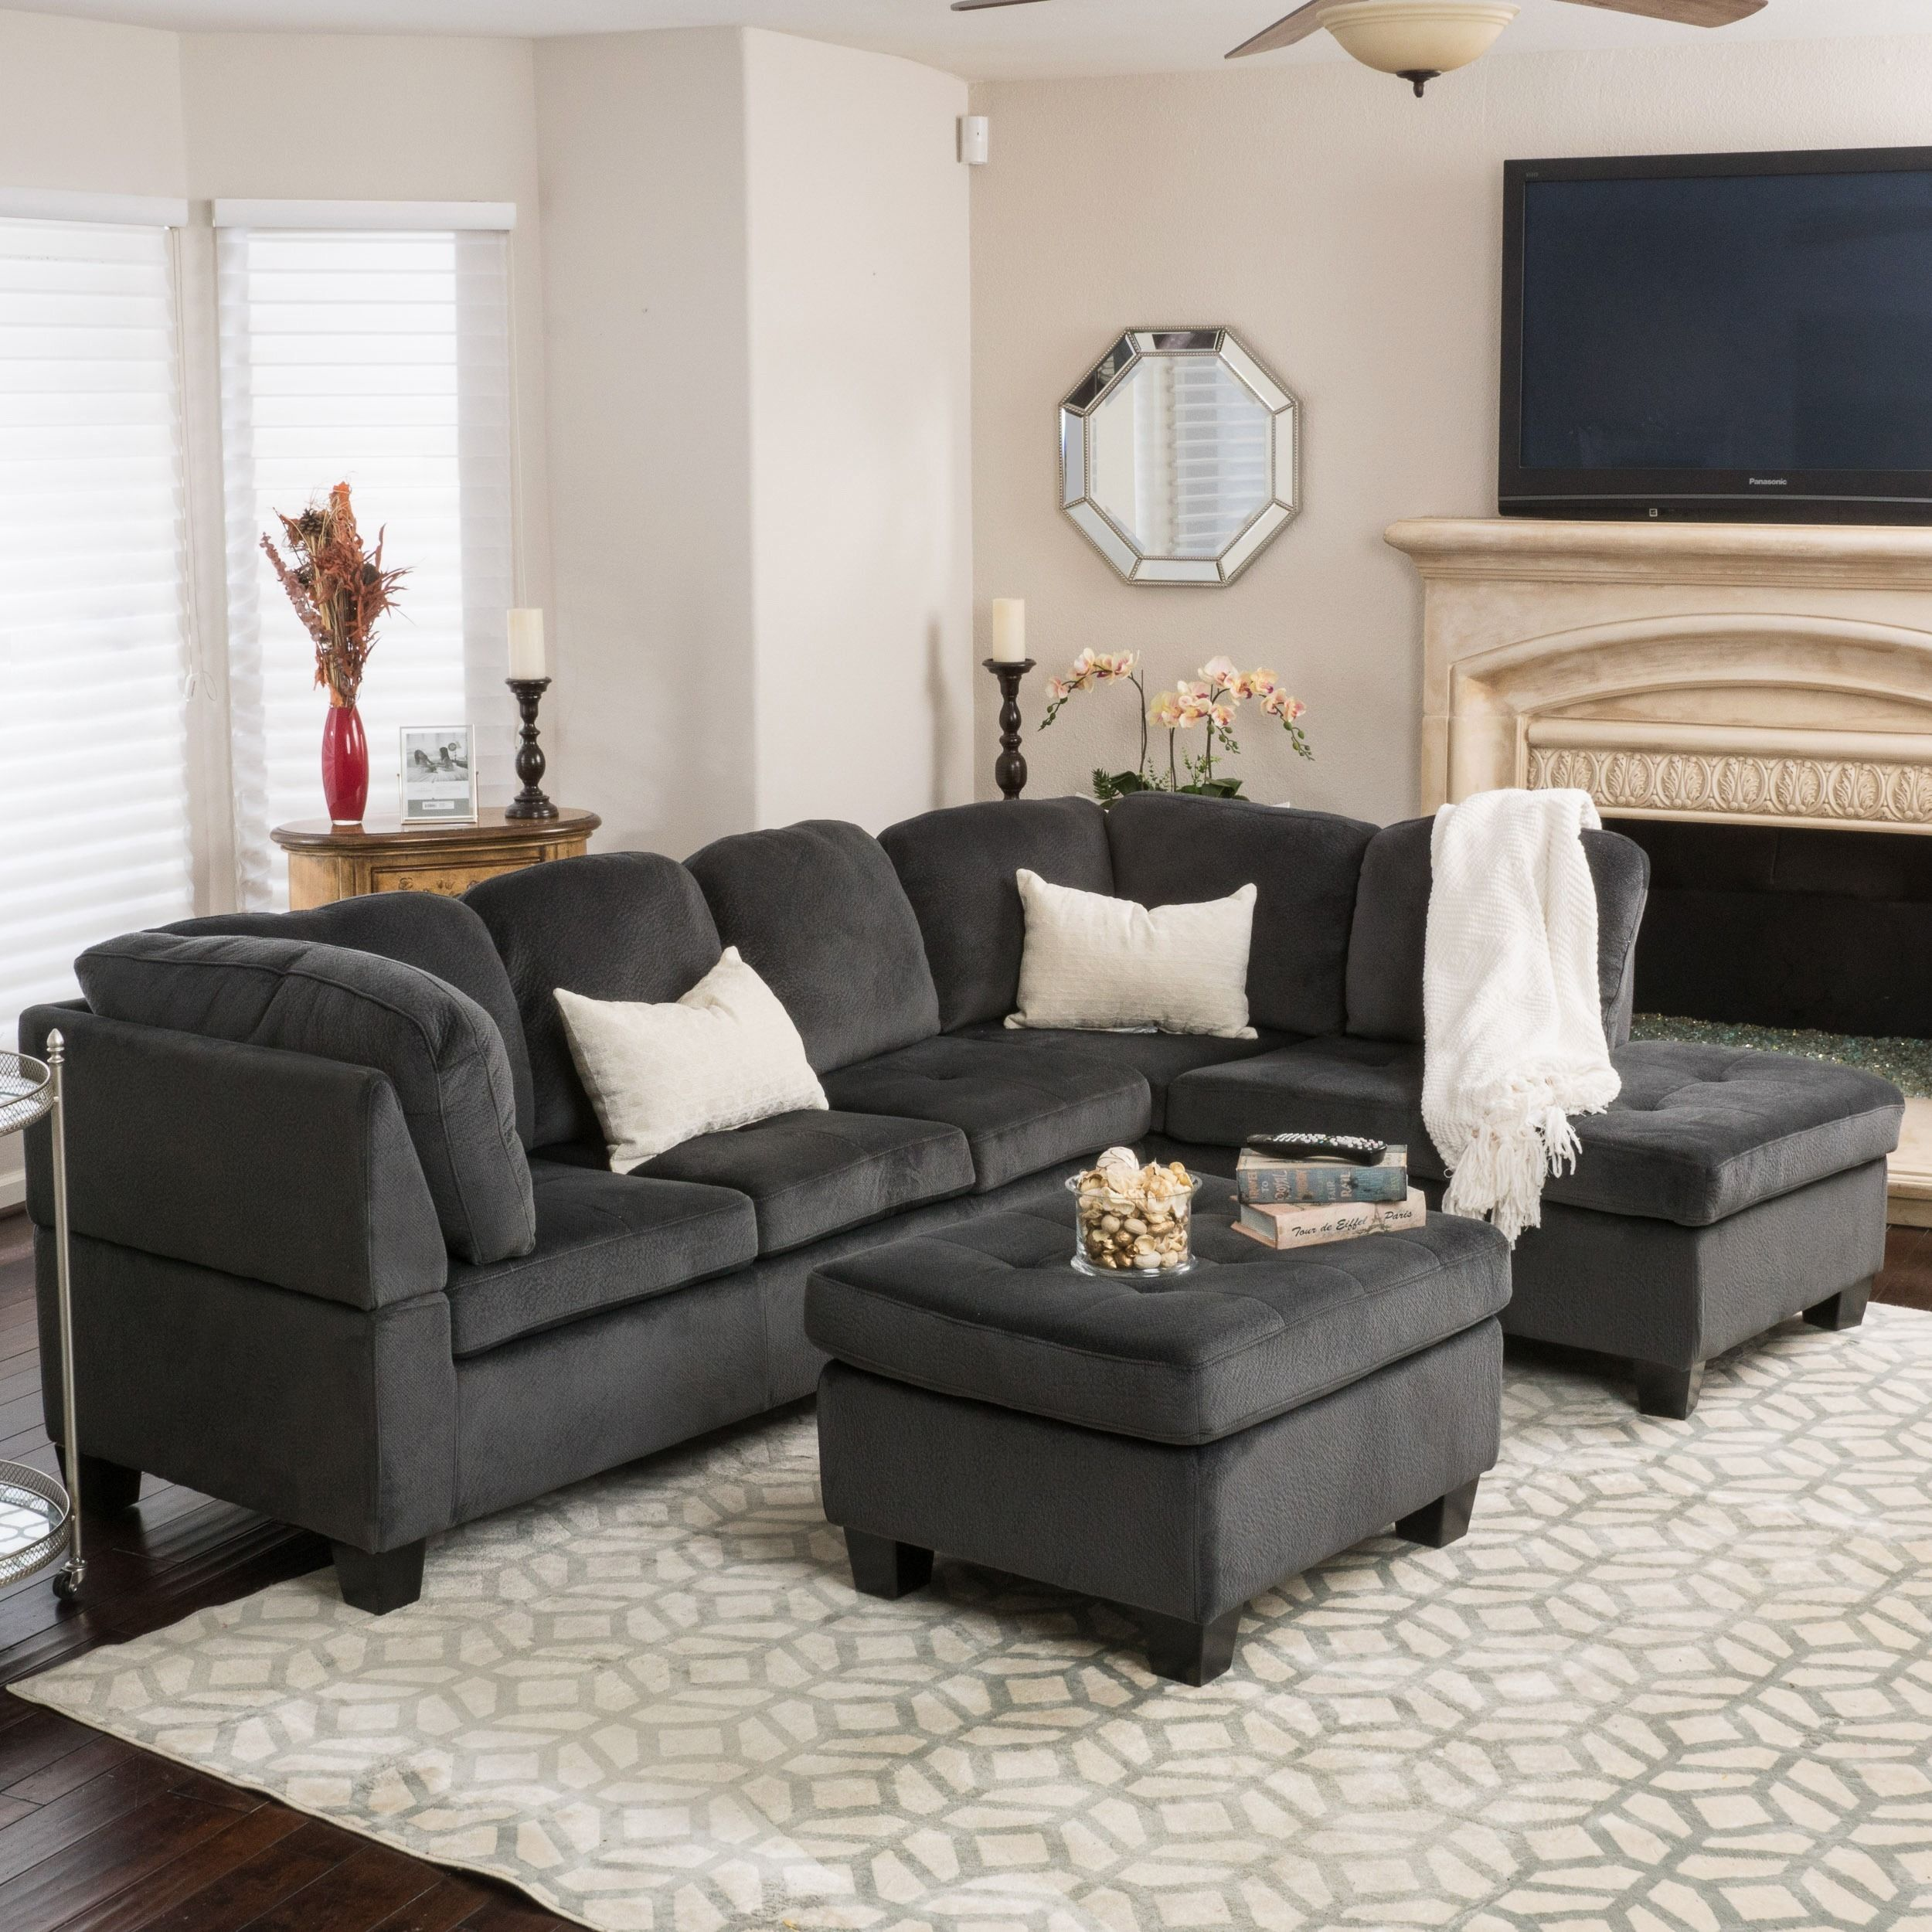 canterbury 3piece fabric sectional sofa set